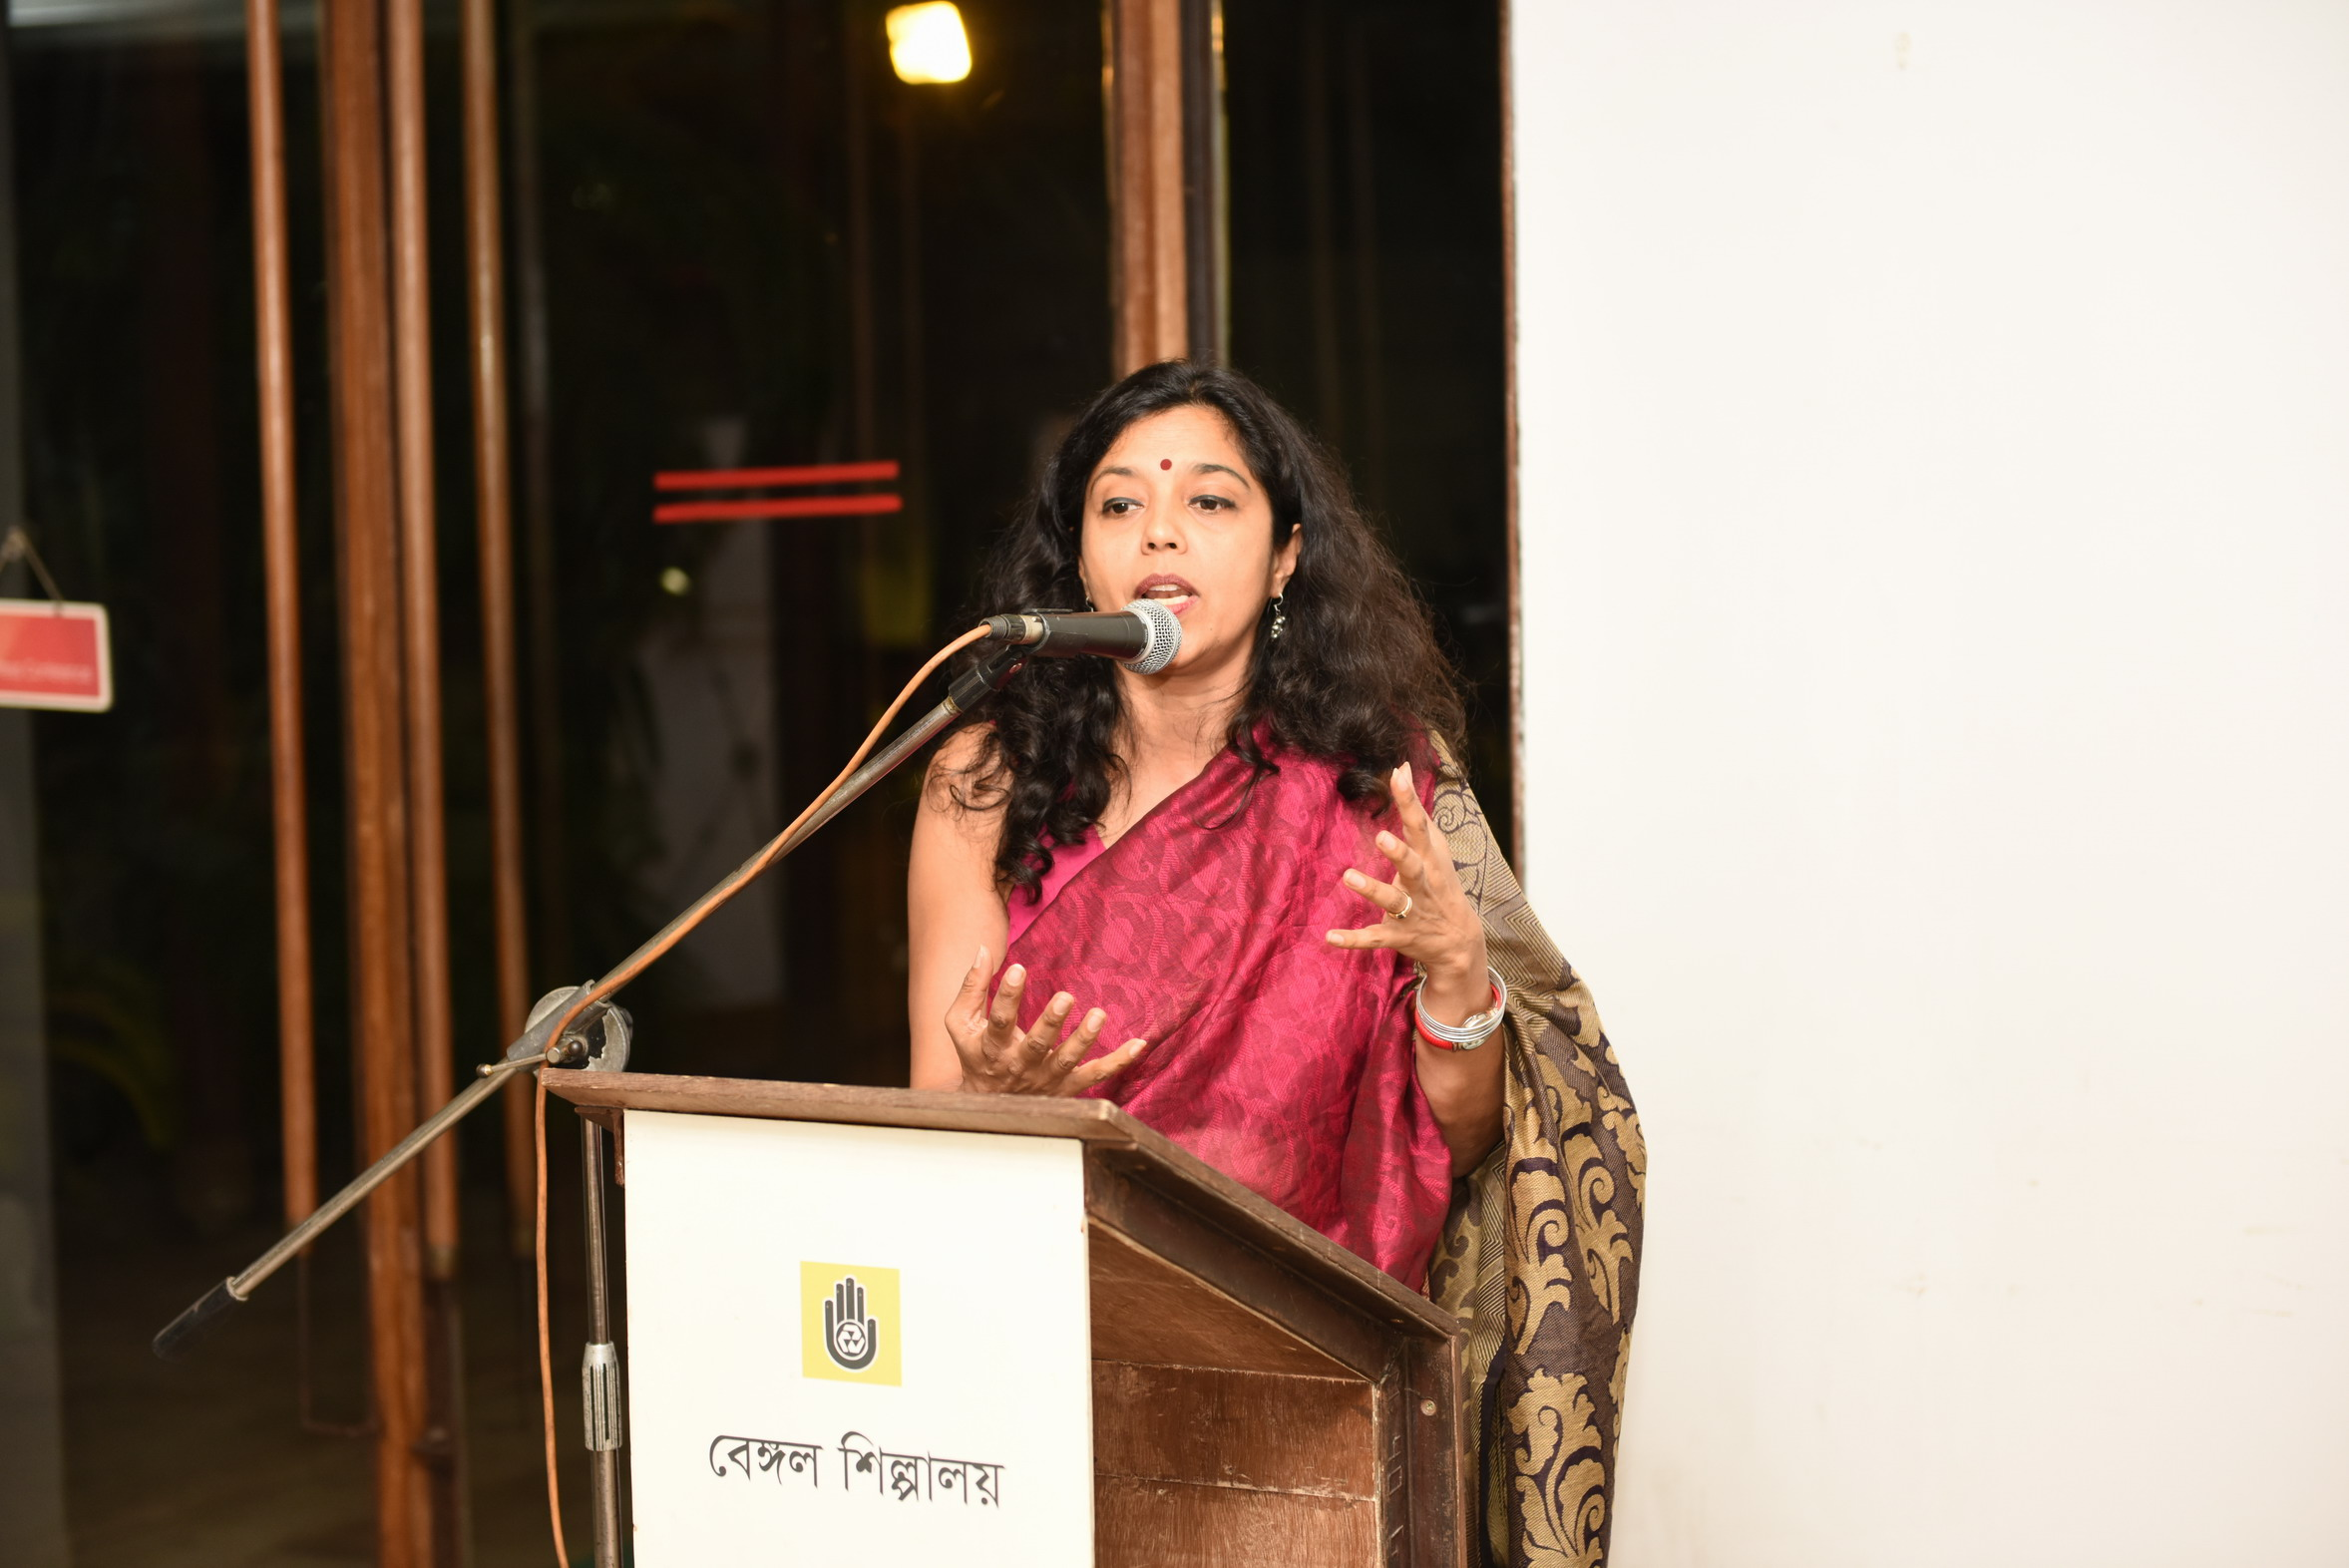 Monica Jahan Bose's art talk Storytelling With Sarees